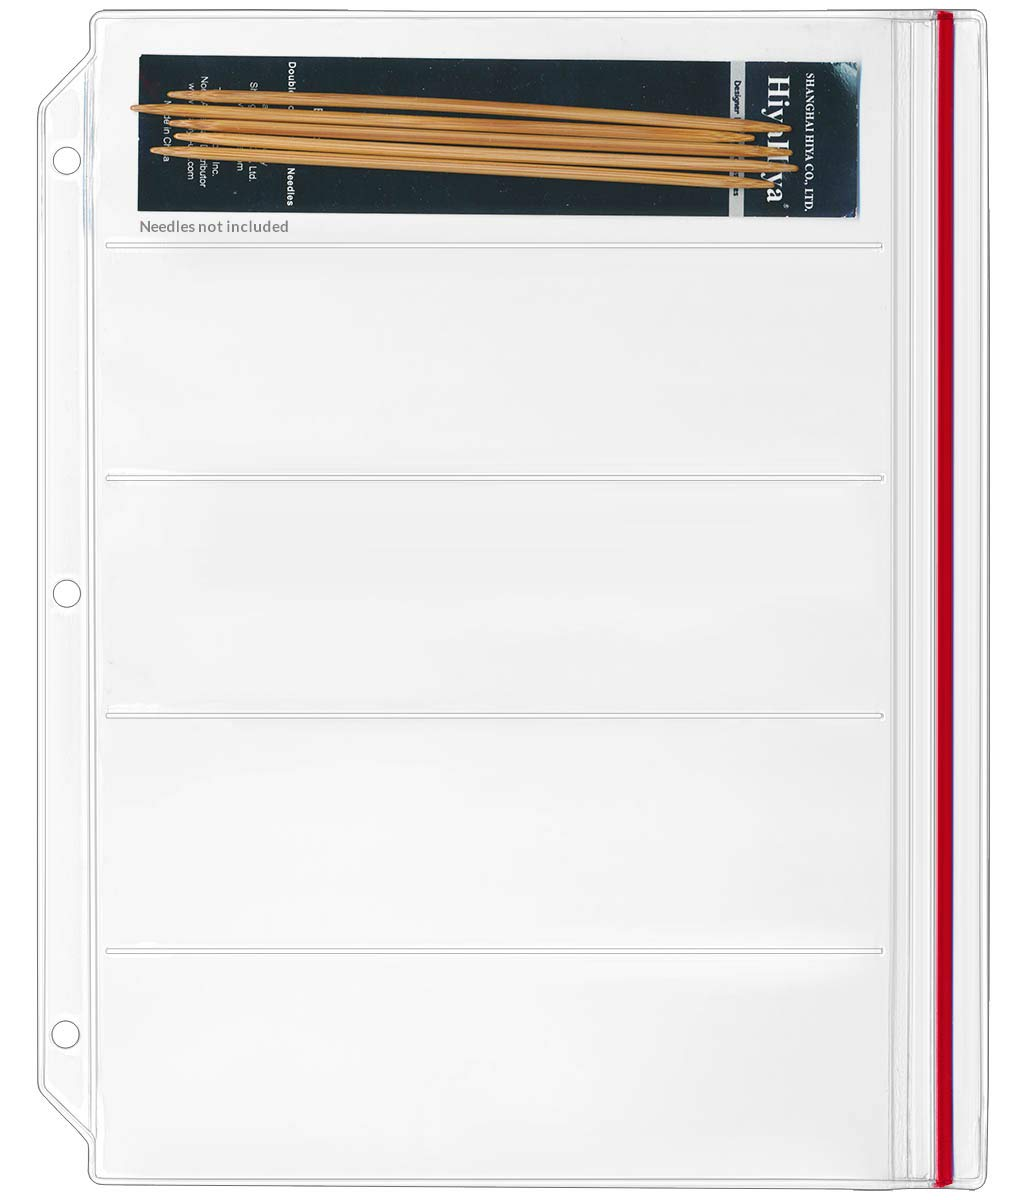 StoreSMART Binder Page for Double Point Needles - Holds 5 Needles per Page - 100-pack - DP500-5-100